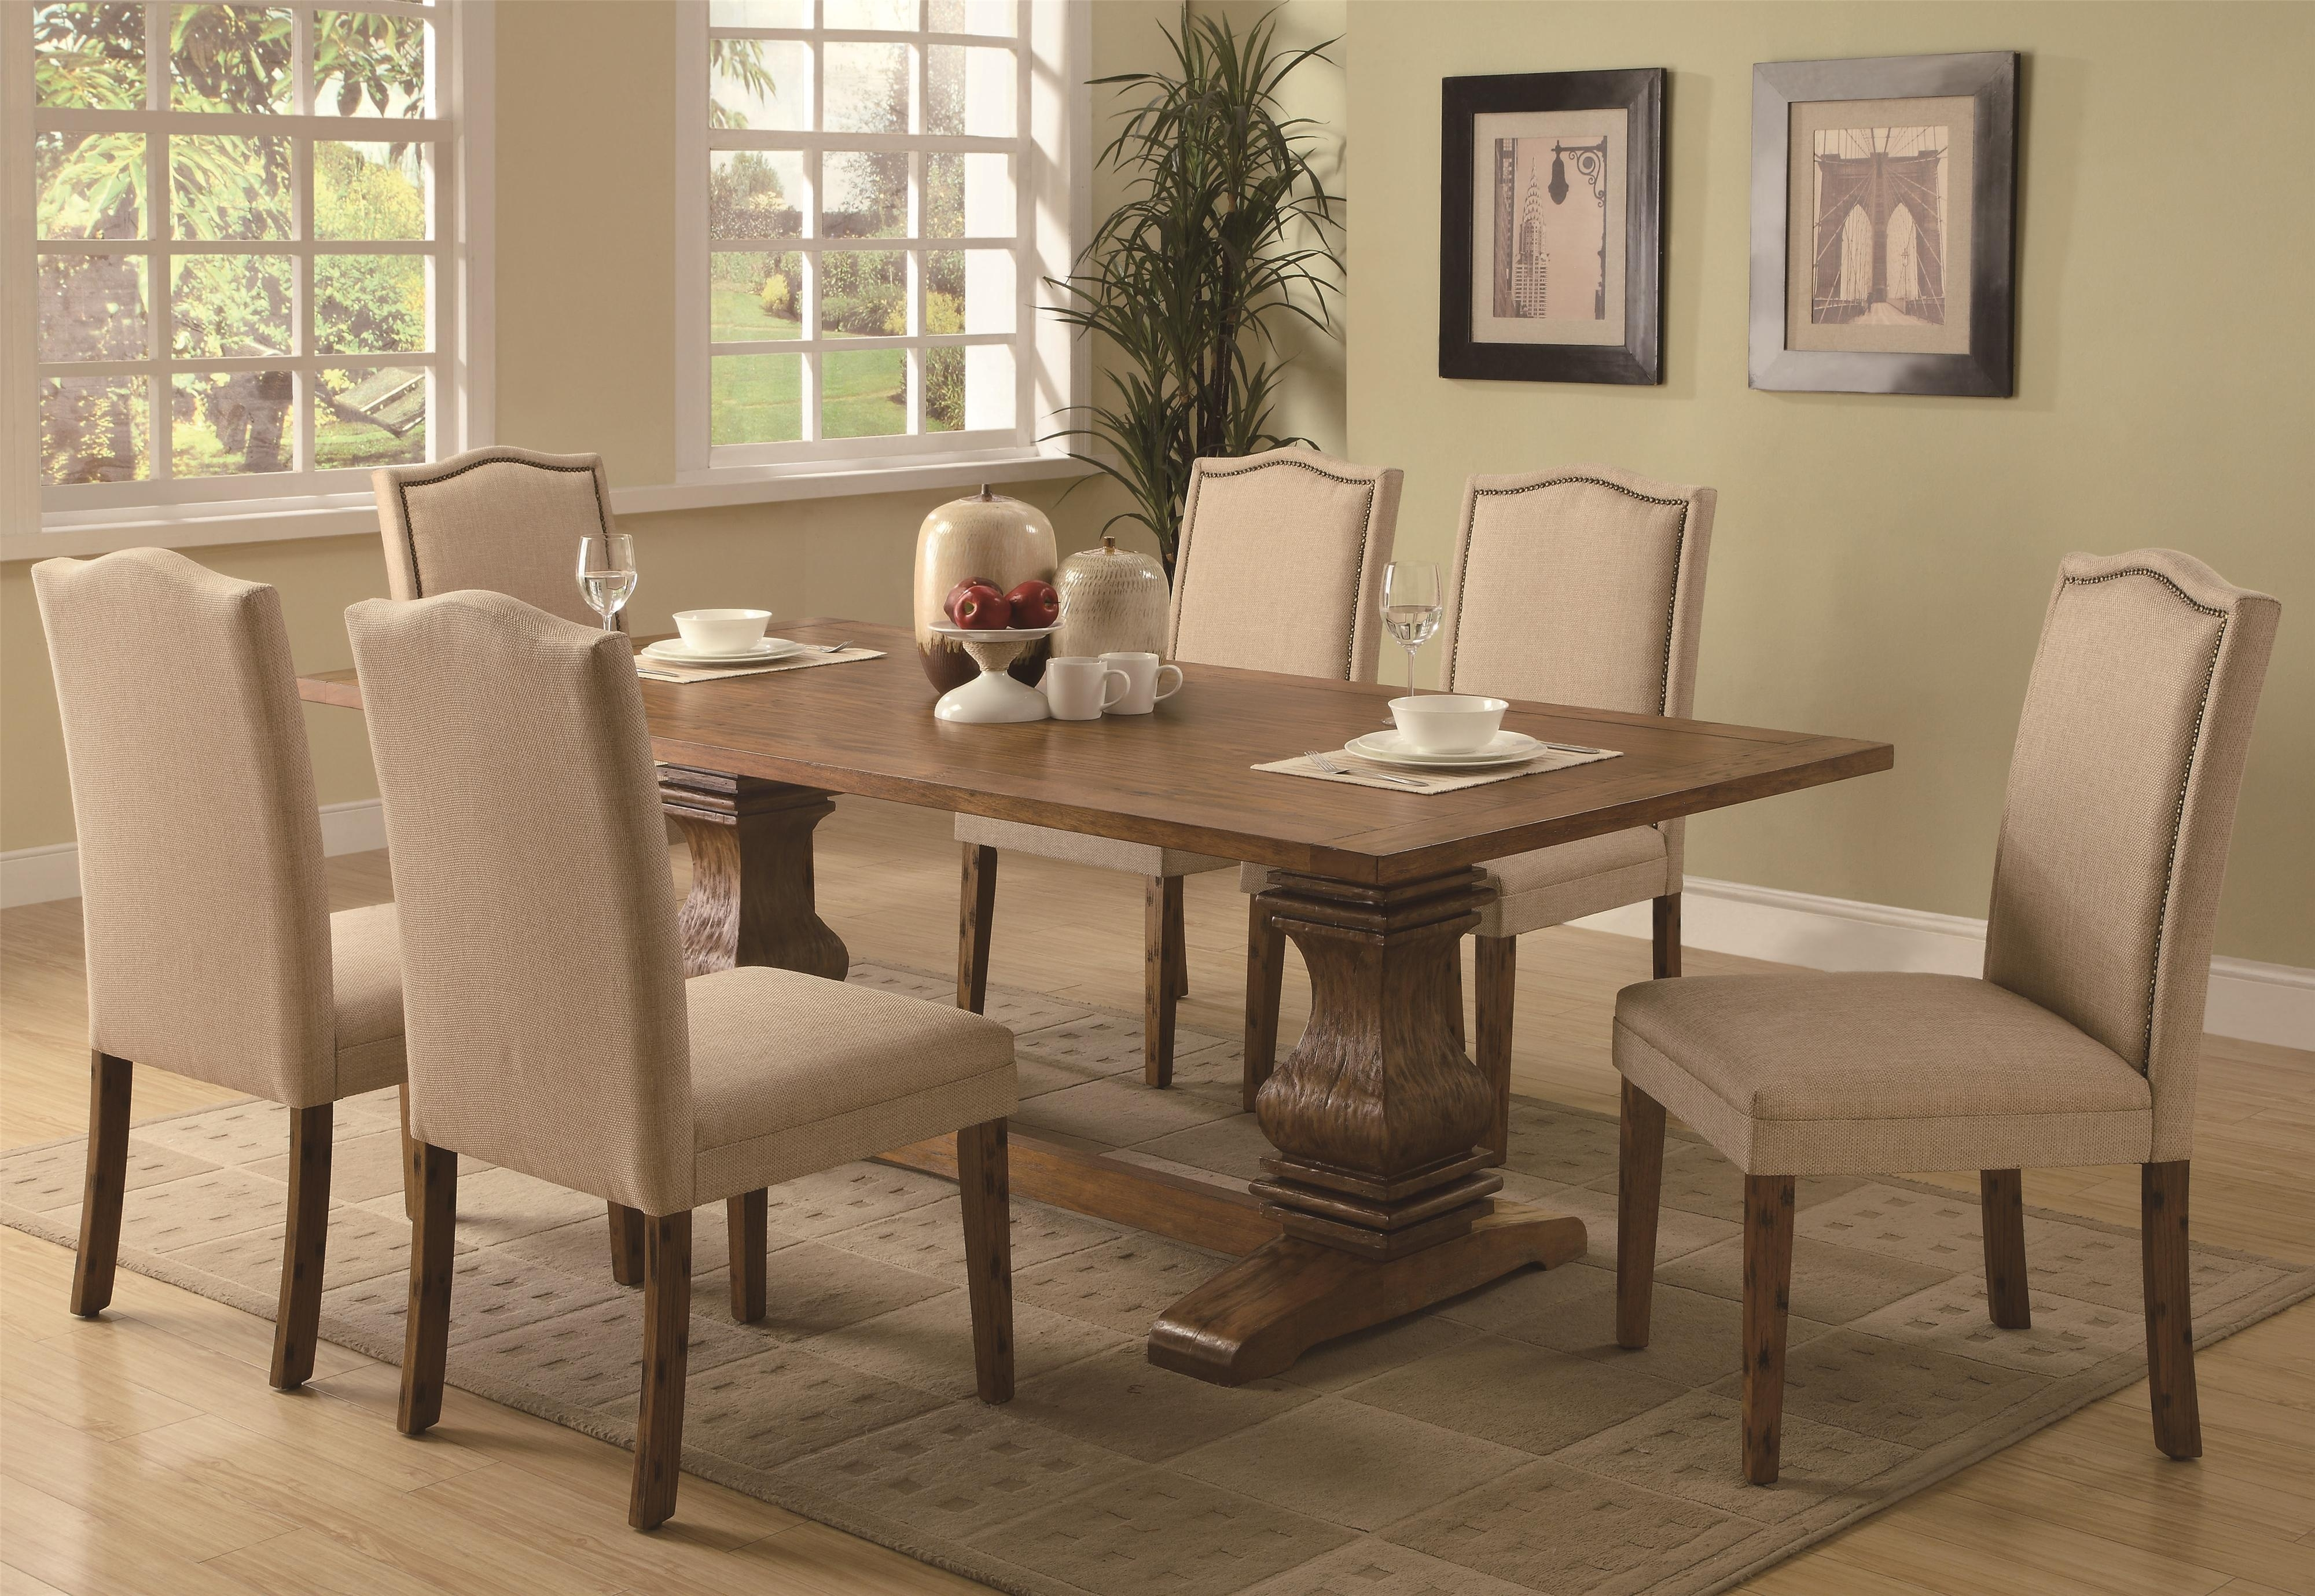 Coaster Parkins 7 Piece Dining Table And Parson Chair Set | Dunk Inside Best And Newest Magnolia Home Double Pedestal Dining Tables (Image 5 of 20)